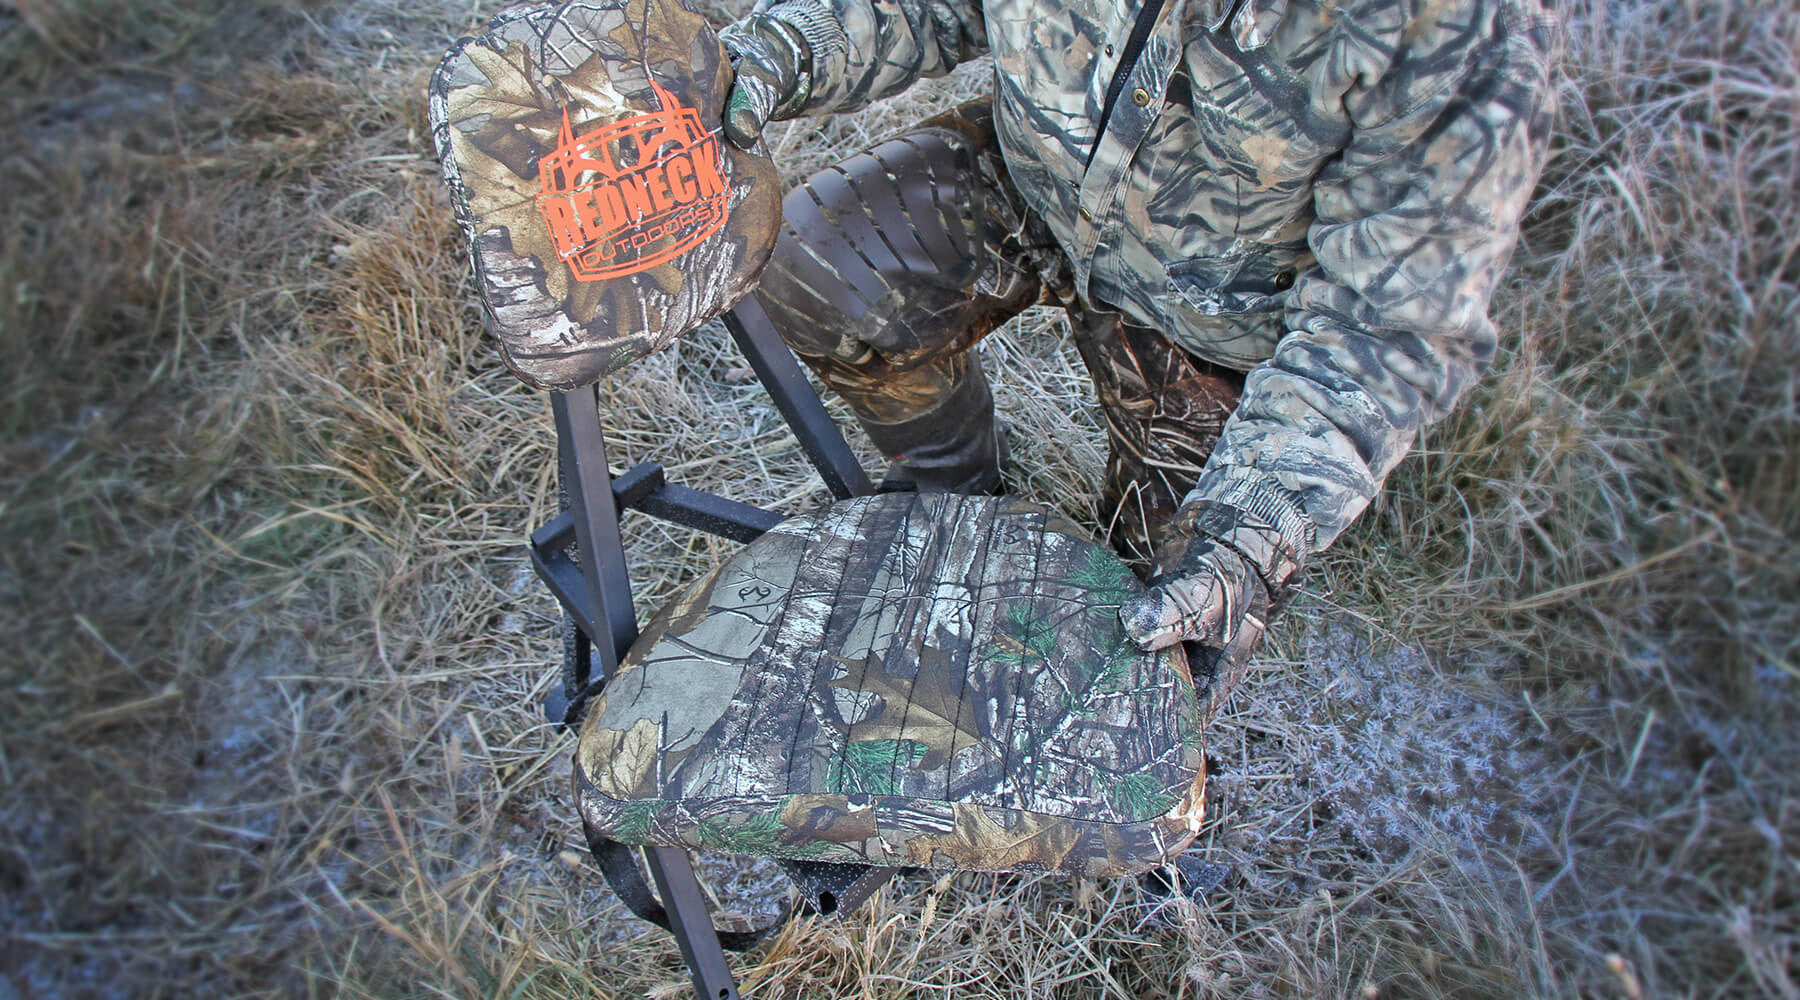 The Redneck Portable Hunting Chair